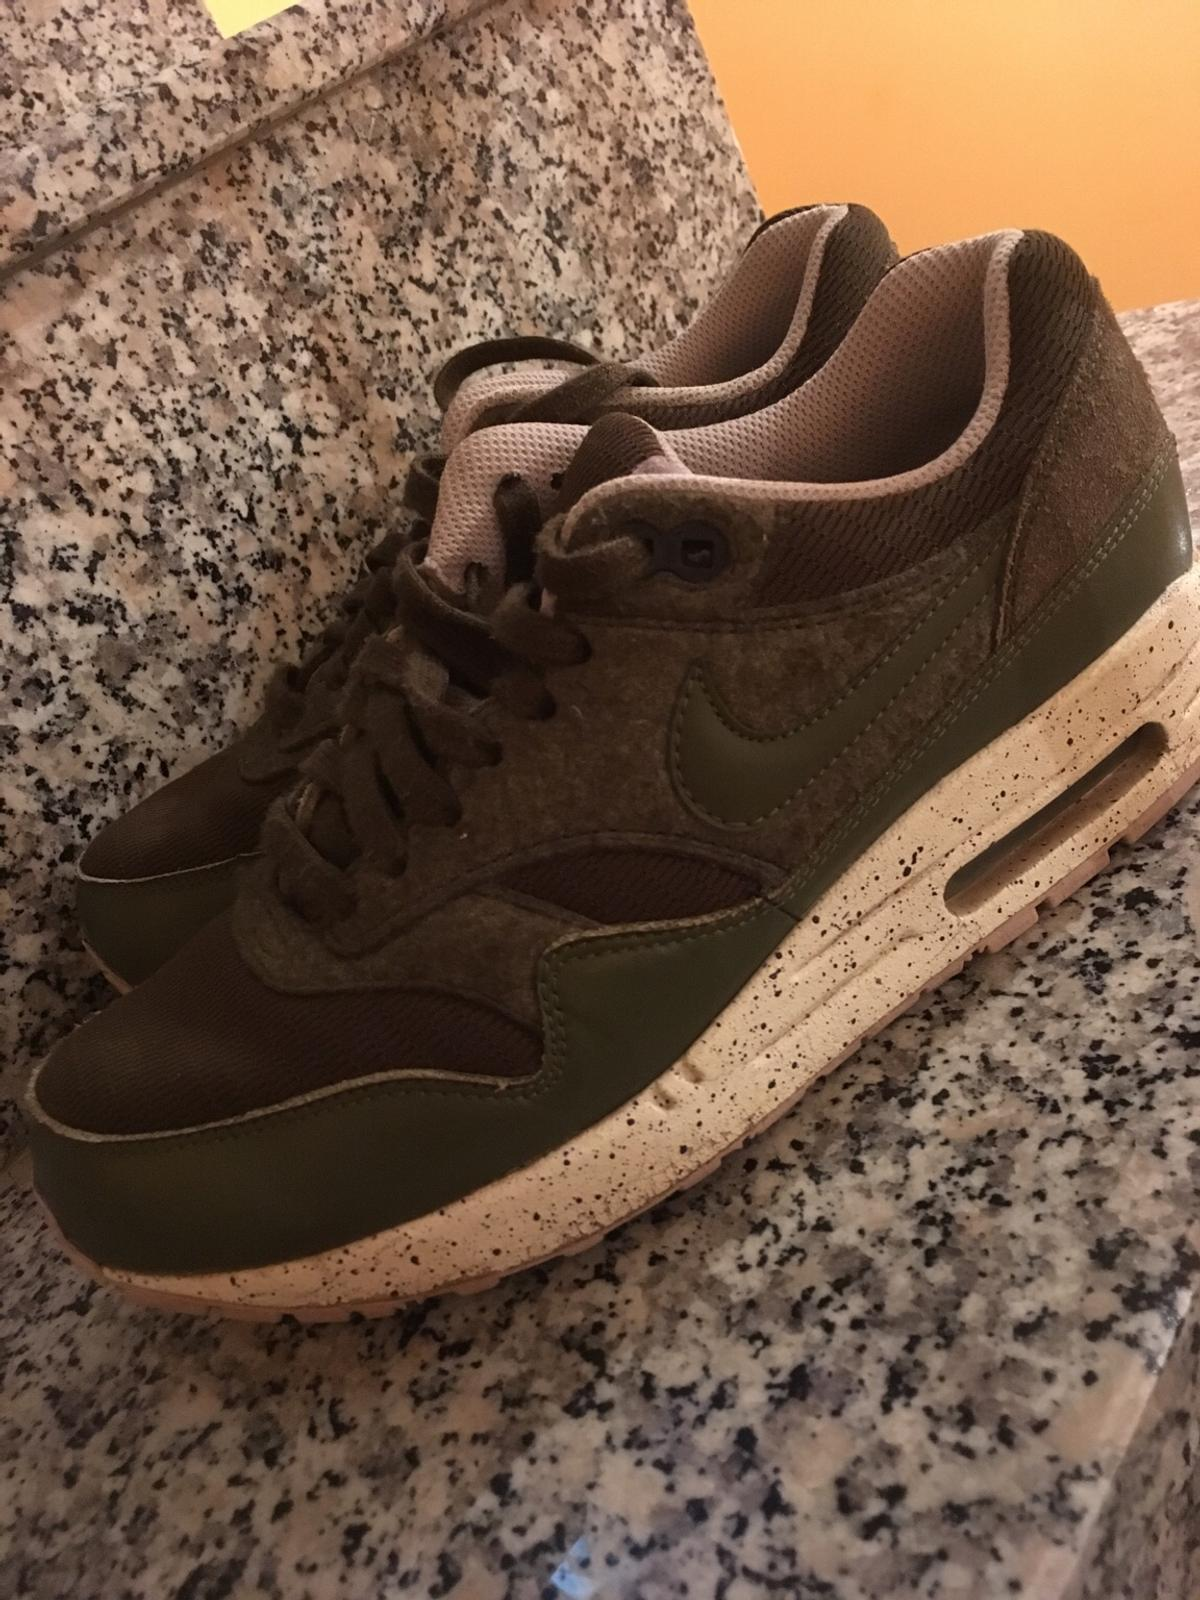 for Max 38 00 grün €20 sale Air 5 in 45699 for Nike Herten ny0wPv8NmO